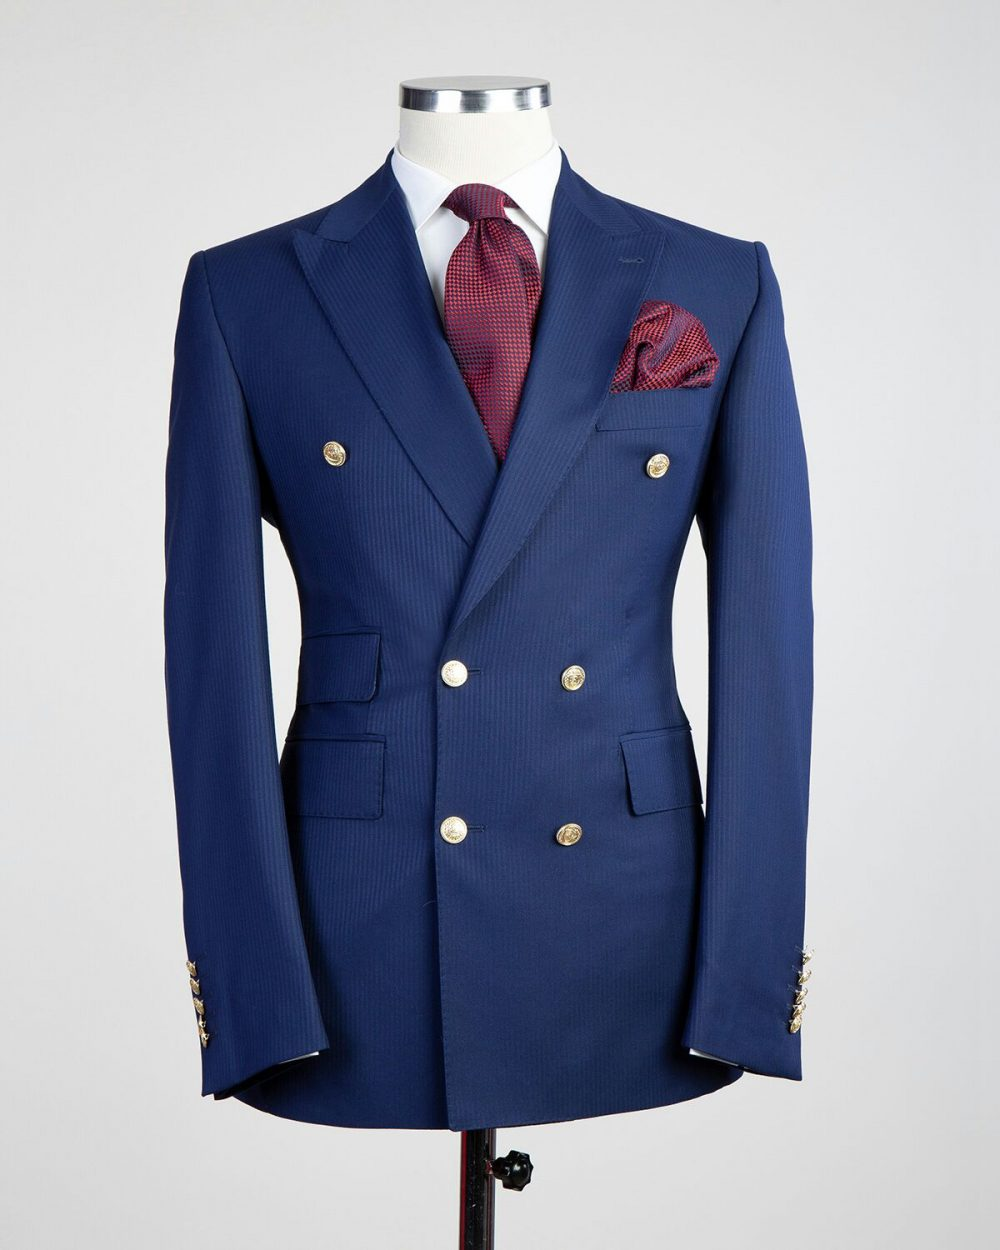 The Hutchison Classic Navy